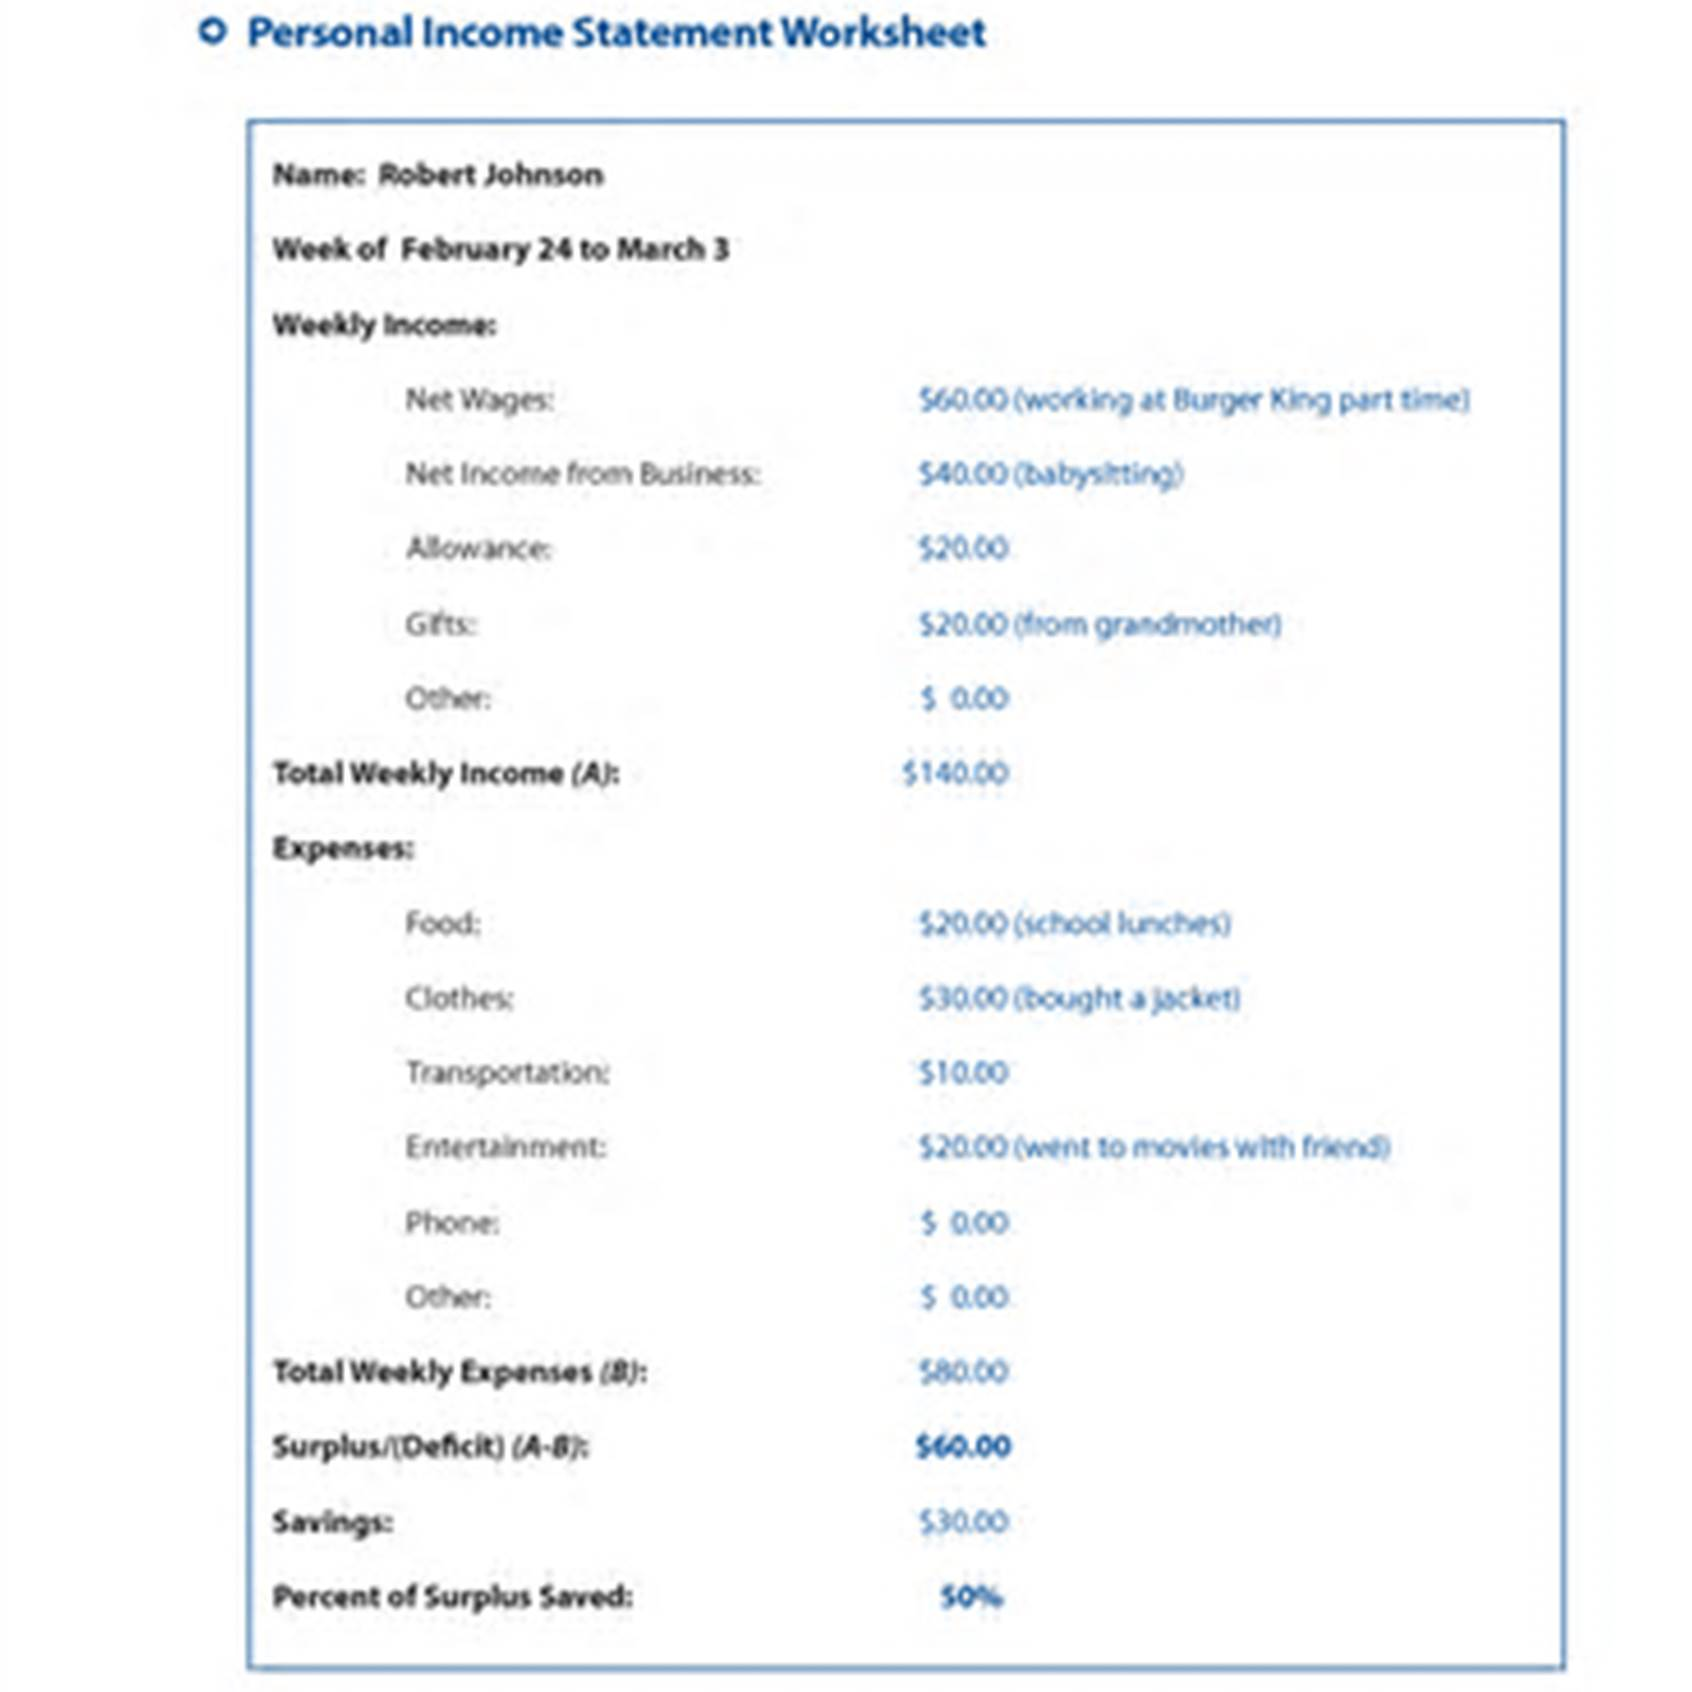 Income Statement Worksheet For Students Income Statement